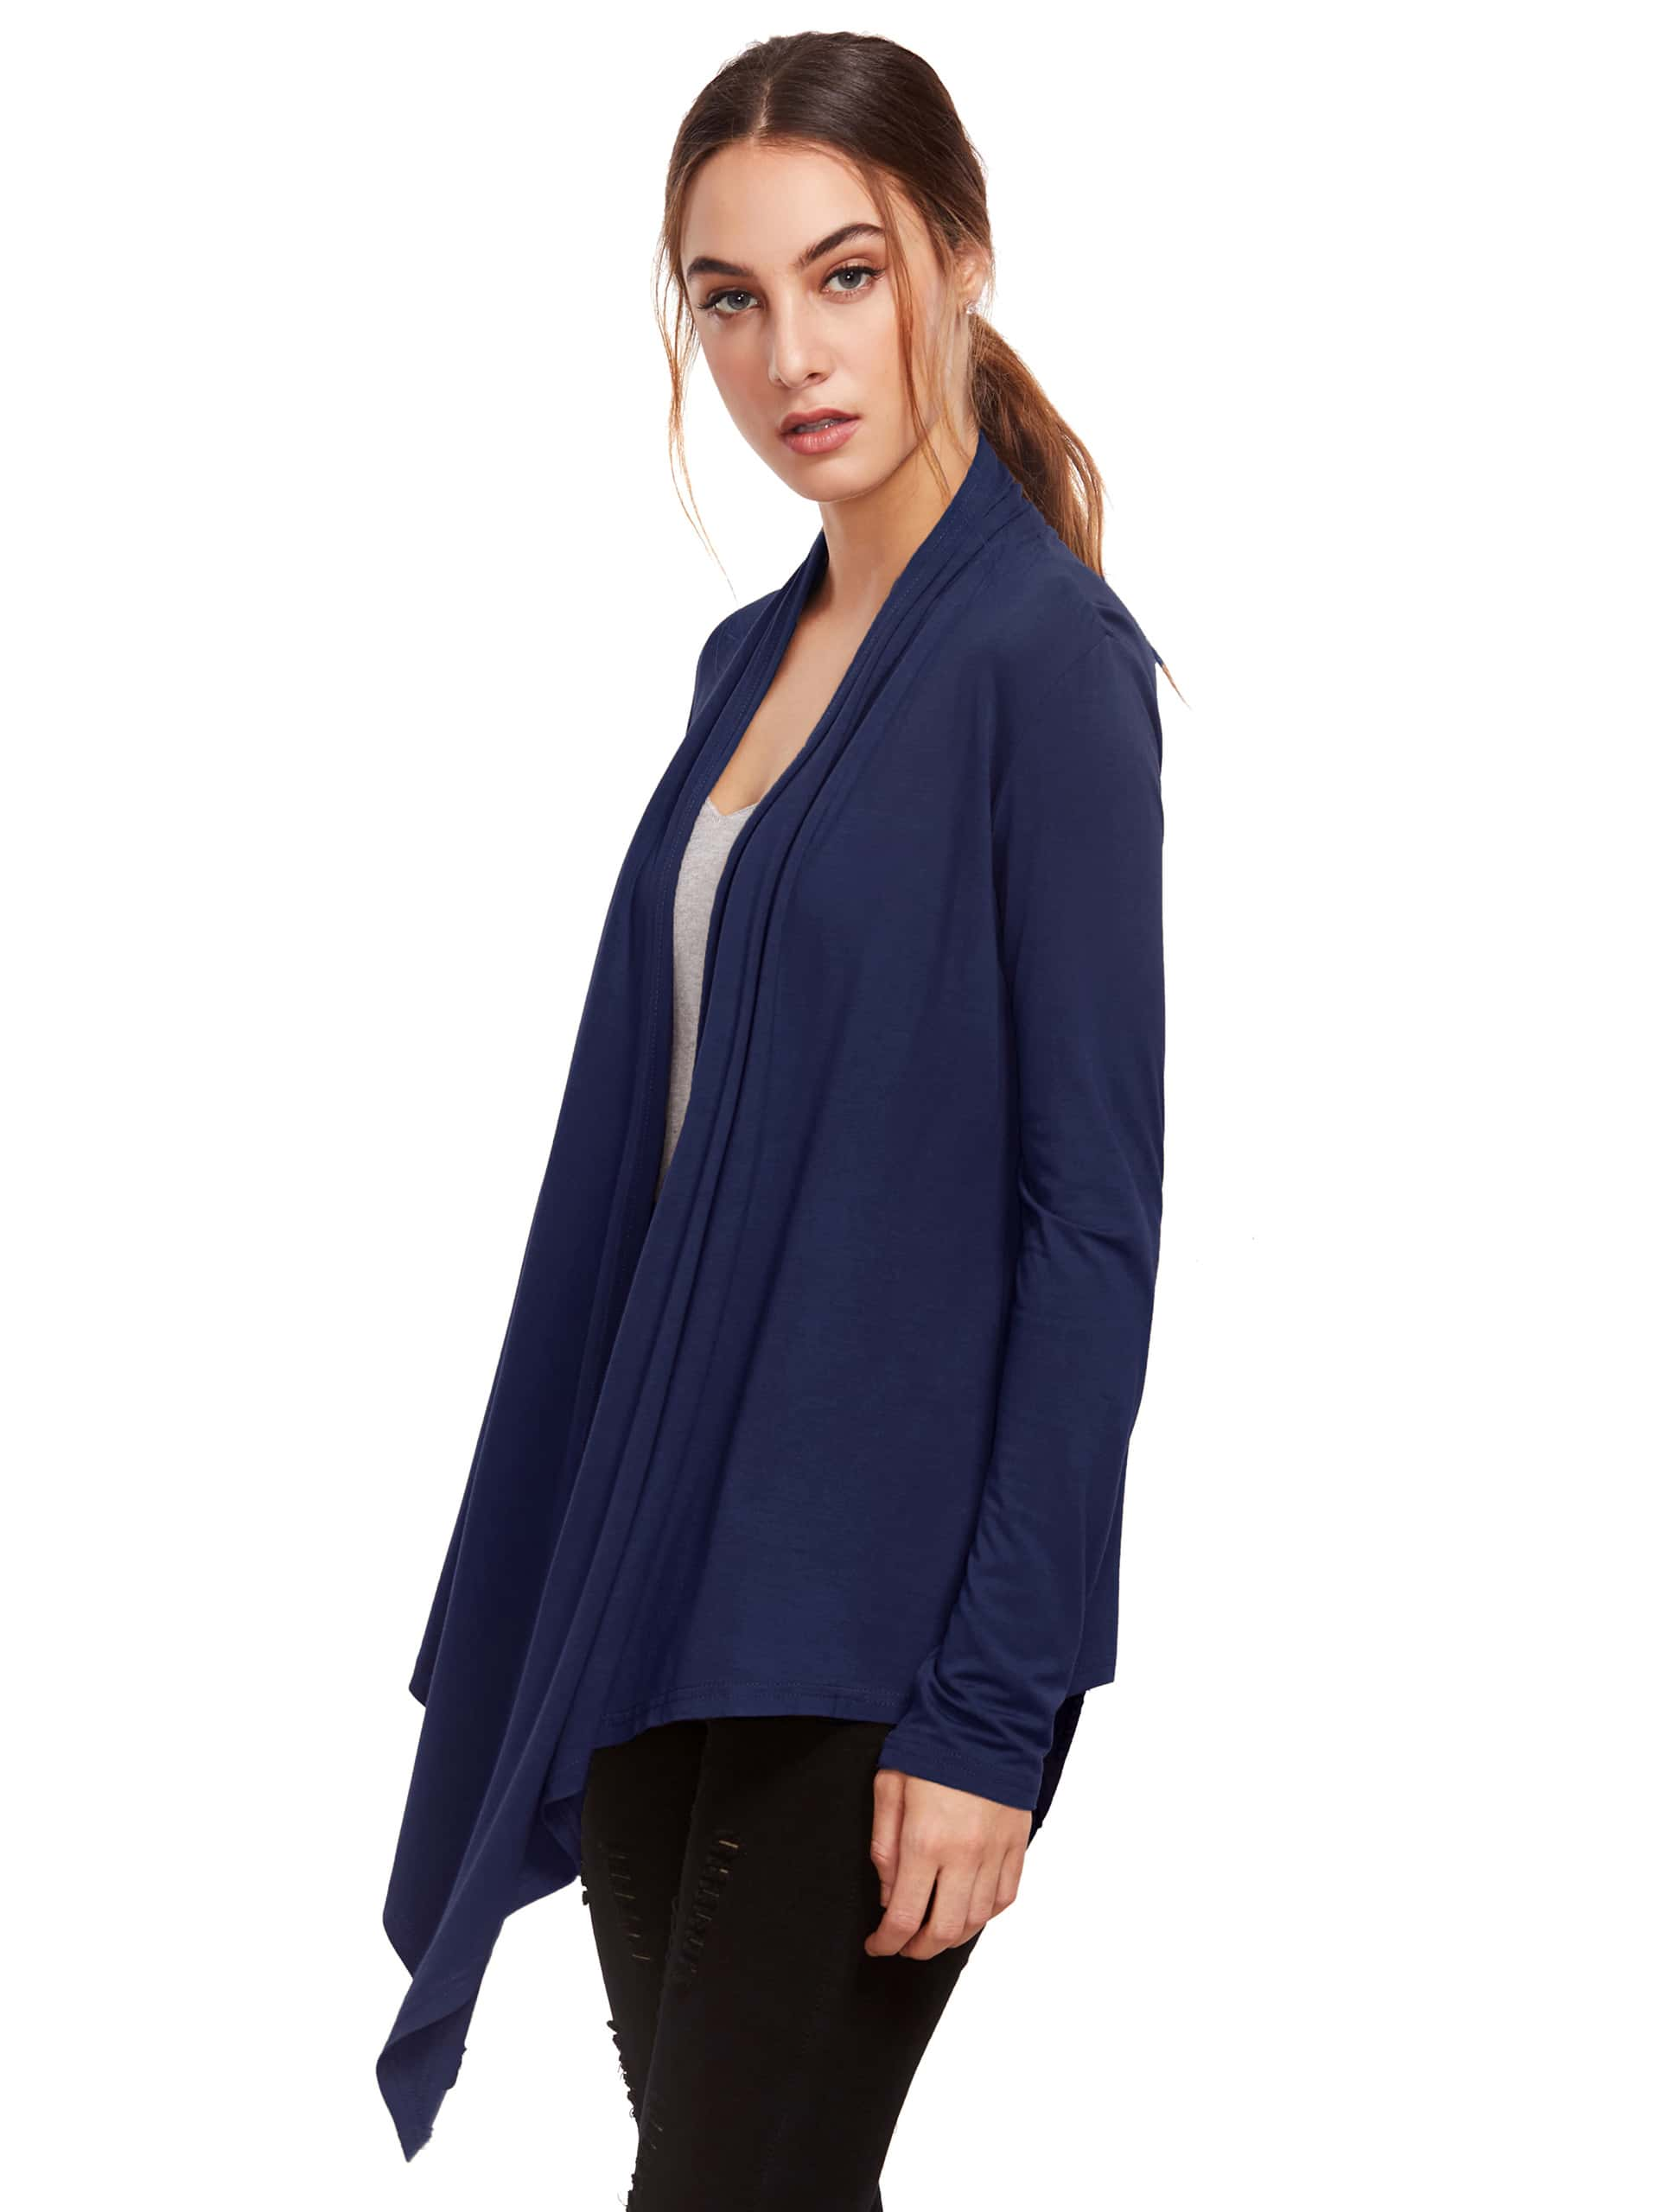 A comfortable layer to complete any look with flattering ribbing to complement your curves. Turnback collar. High-low hem. 38